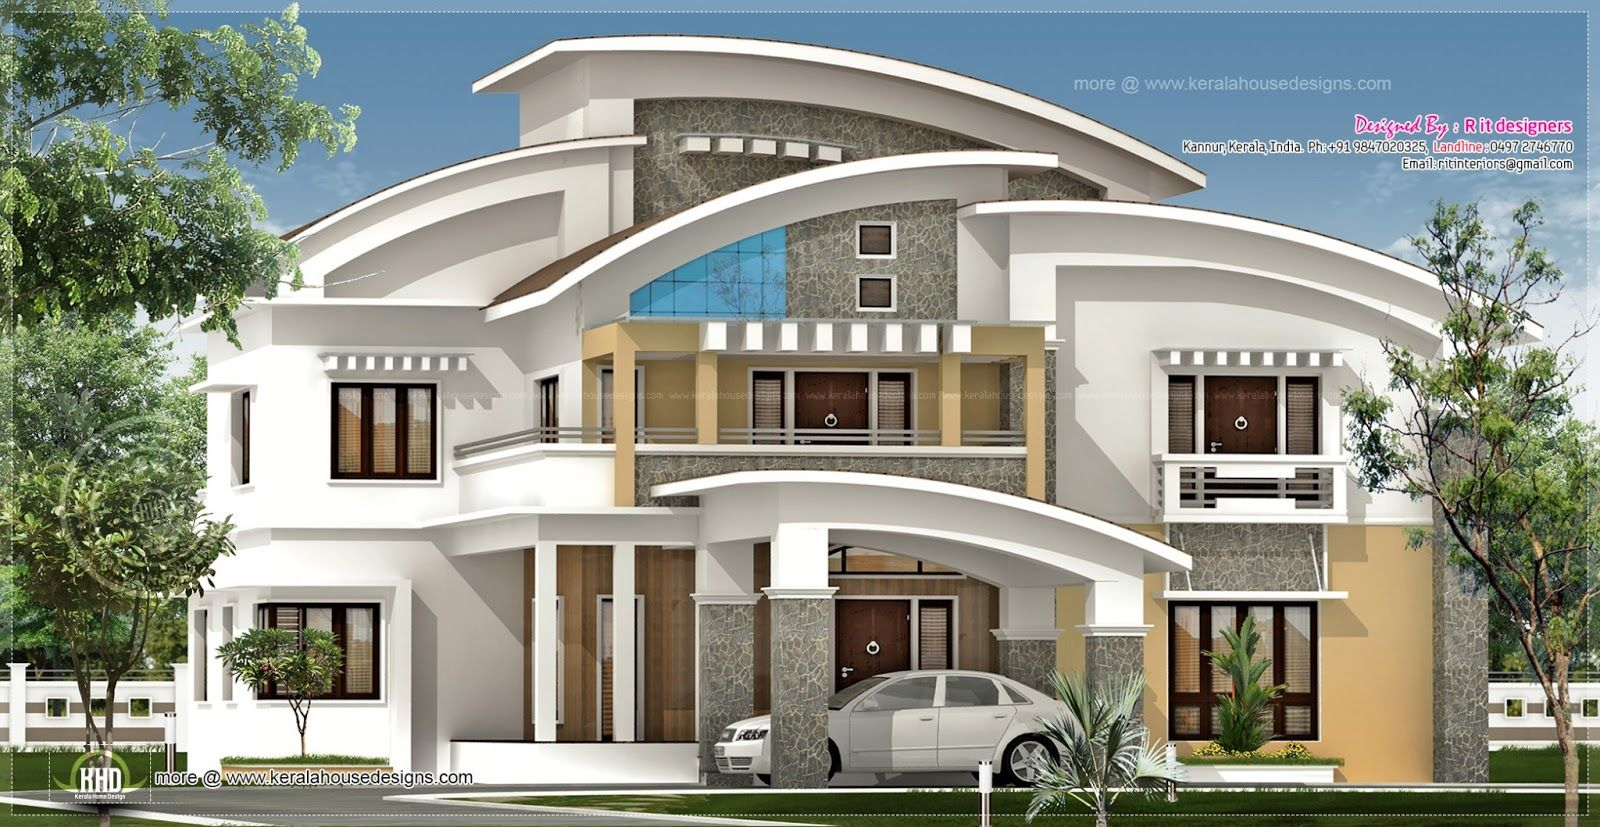 Awesome Luxury Homes Plans 8 French Country Luxury Home